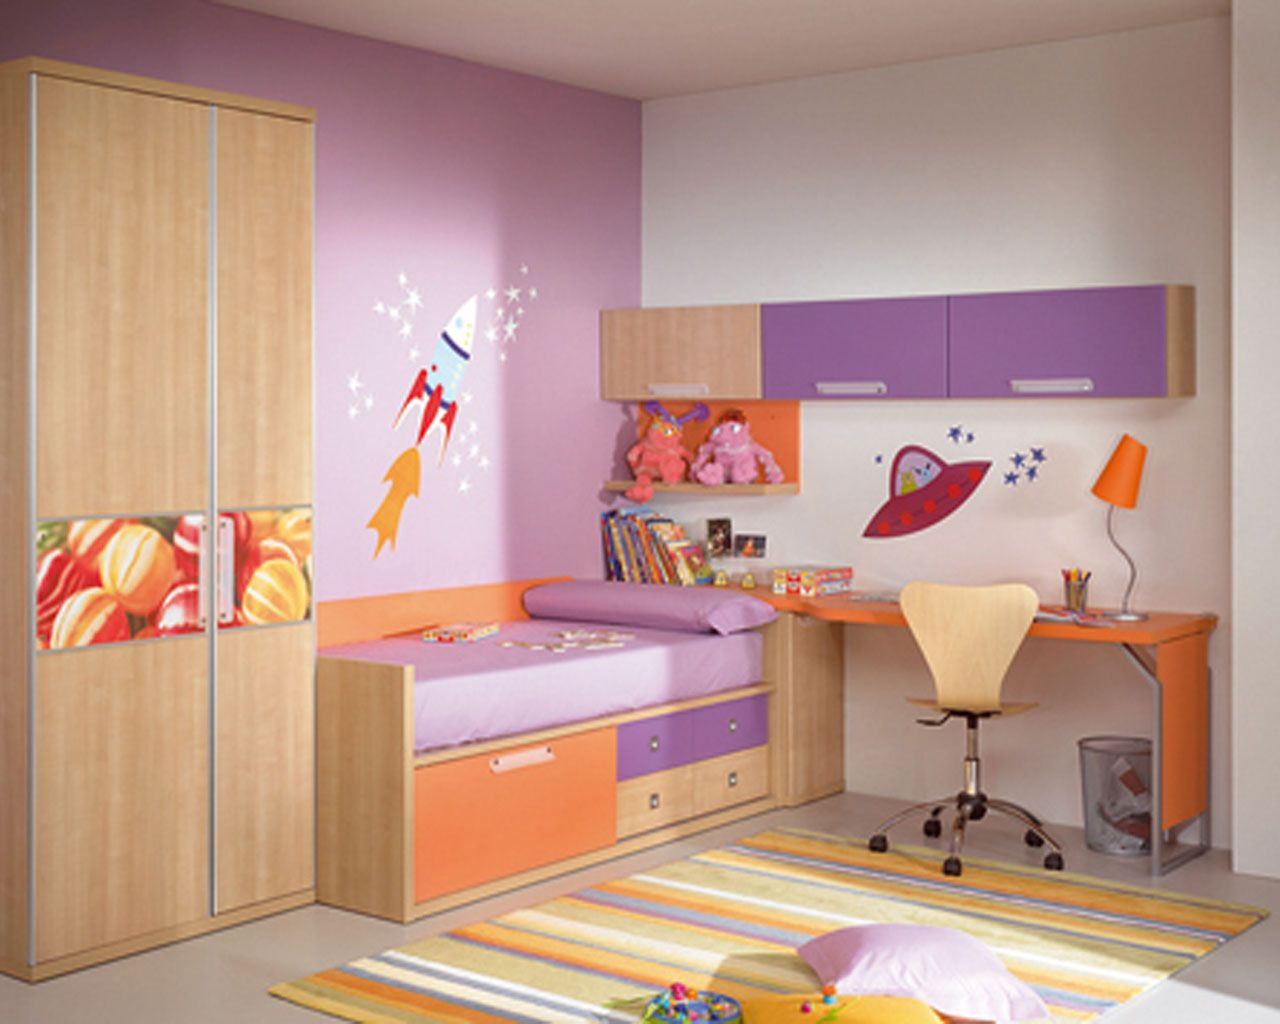 Purple And White Themed Modern Kids Room Design With Corner Space Brown  Wood Bed Frame That Part 15